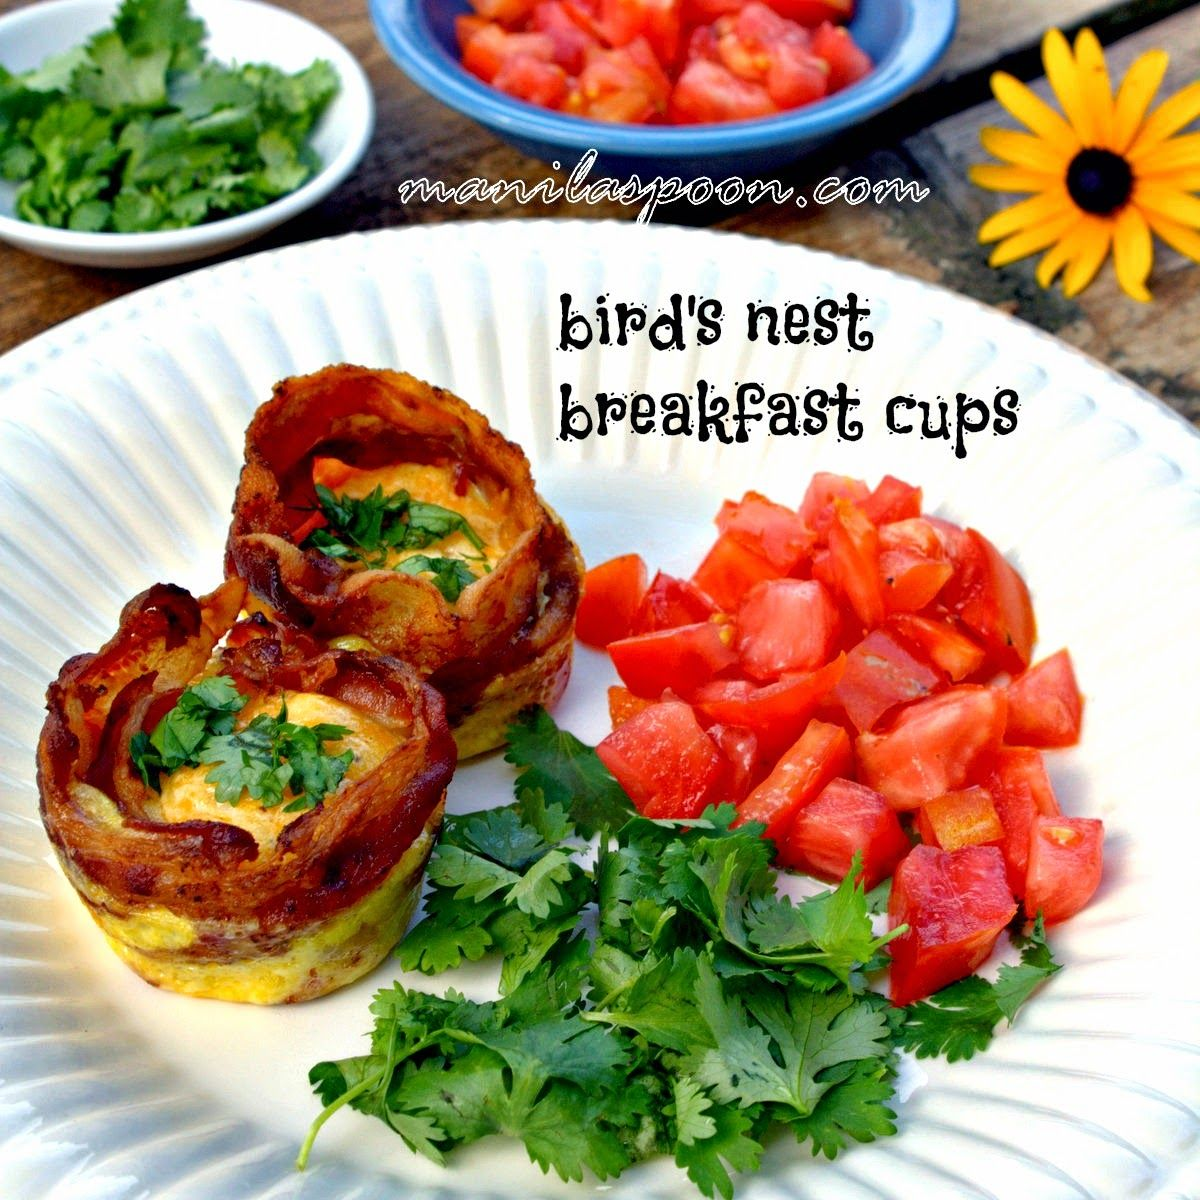 Have this Bird's Nest Breakfast Cups (Baked Bacon and Eggs flavored with Mexican Cheese and a little cayenne pepper!) as a great start to your day! Have a lovely one!